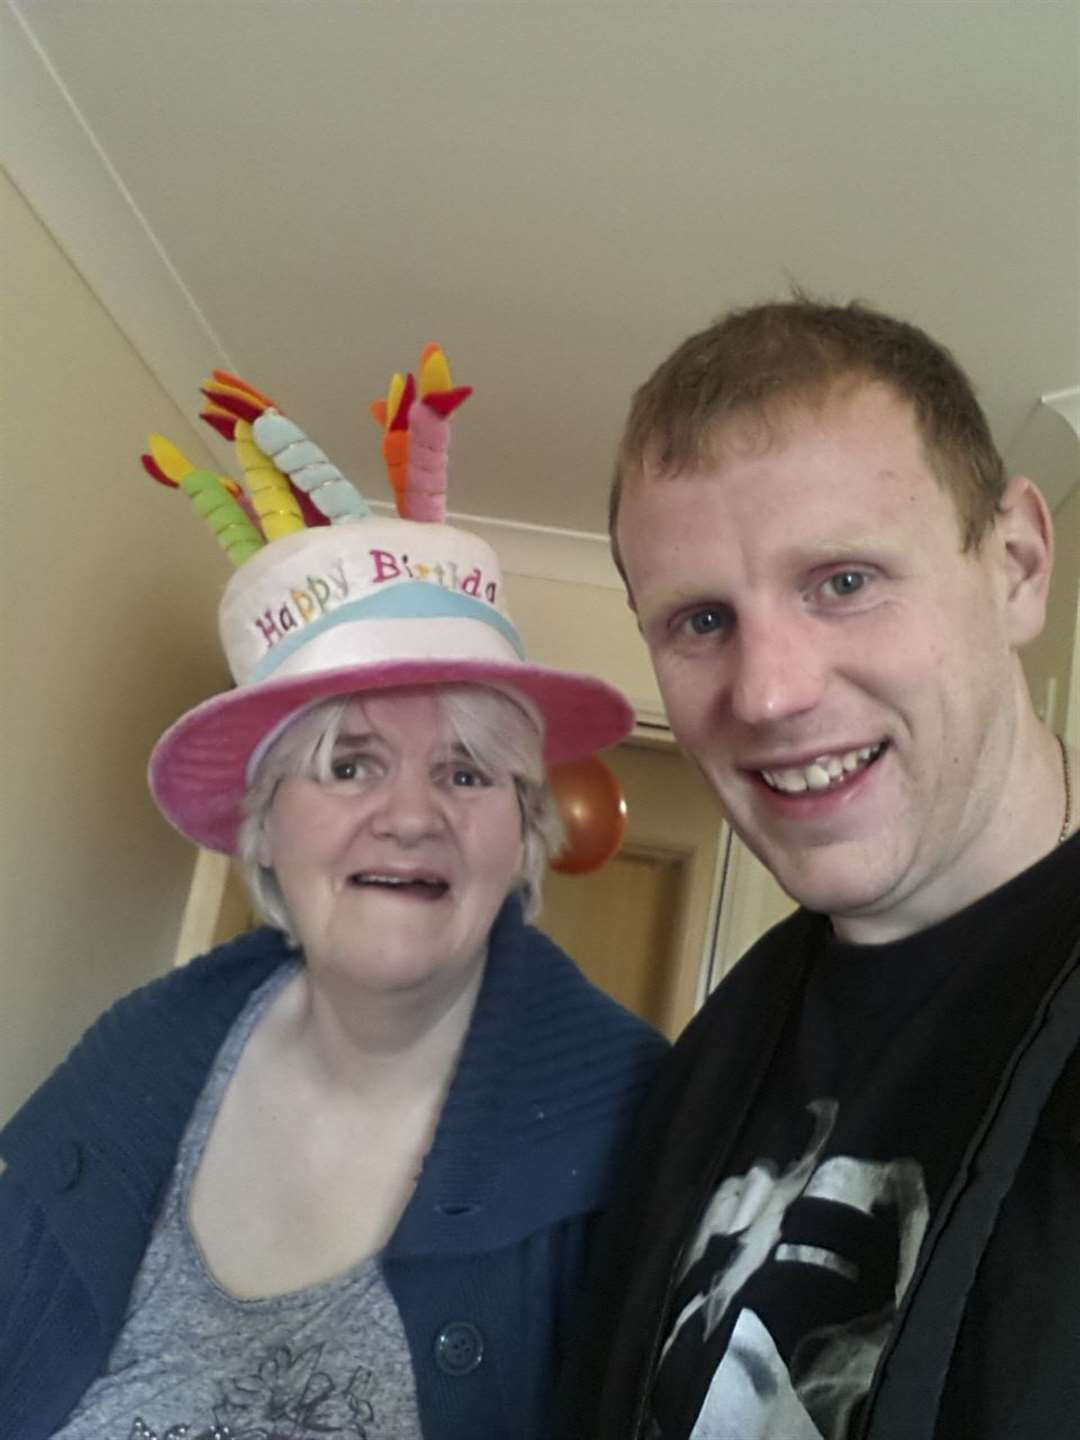 VELVET: Frontotemporal dementia (FTD) (SUBMITTED PHOTOGRAPHS) James, 37, from Soham seen here with his mum, Anne (64), who is living with frontotemporal dementia (FTD). Her symptoms started in her early 40s, but she was only diagnosed age 58 (in 2012). Picture: Keith Heppell. (7199055)